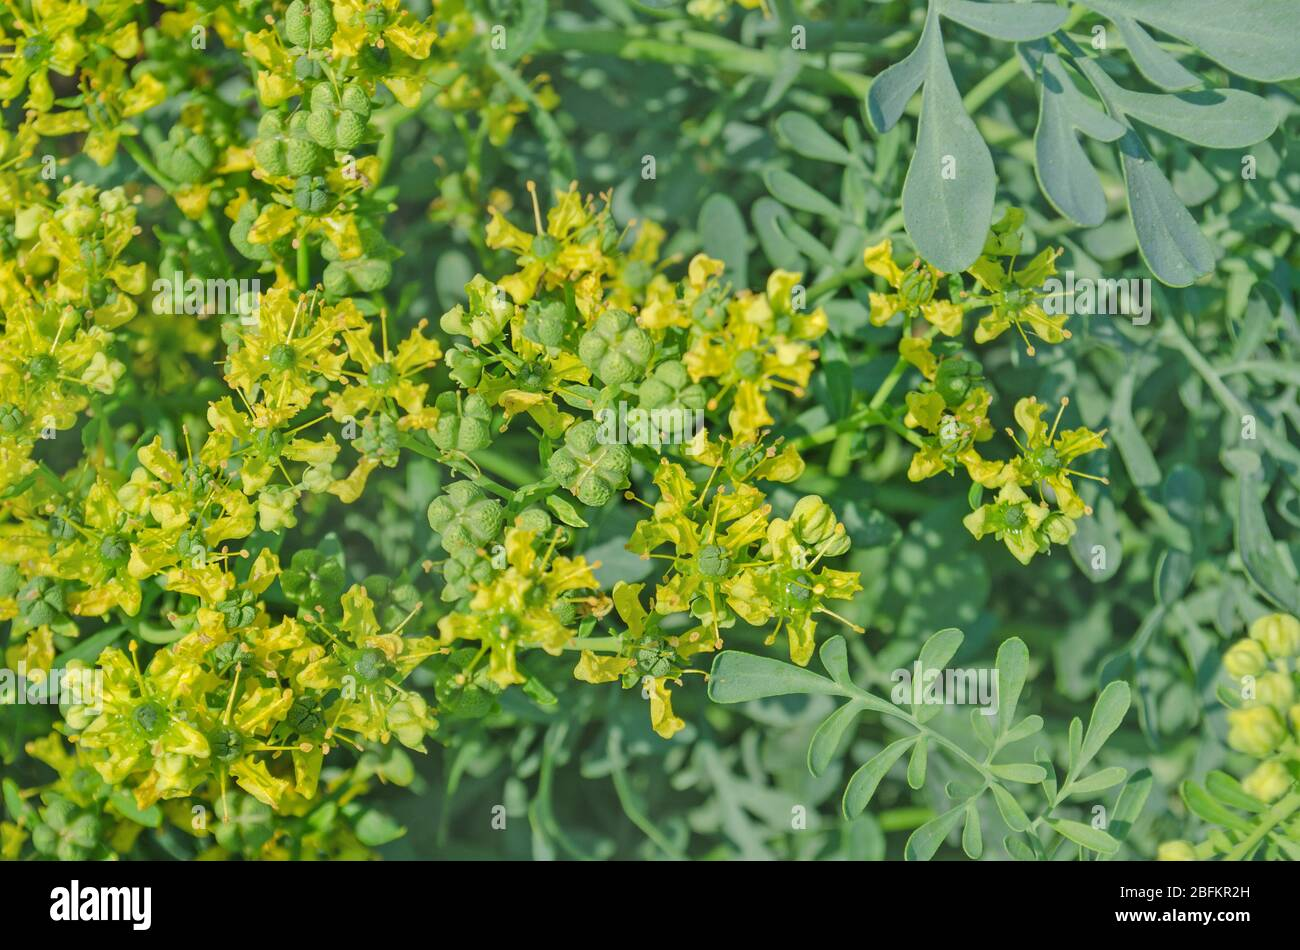 Rue Plant Stock Photos Rue Plant Stock Images Alamy